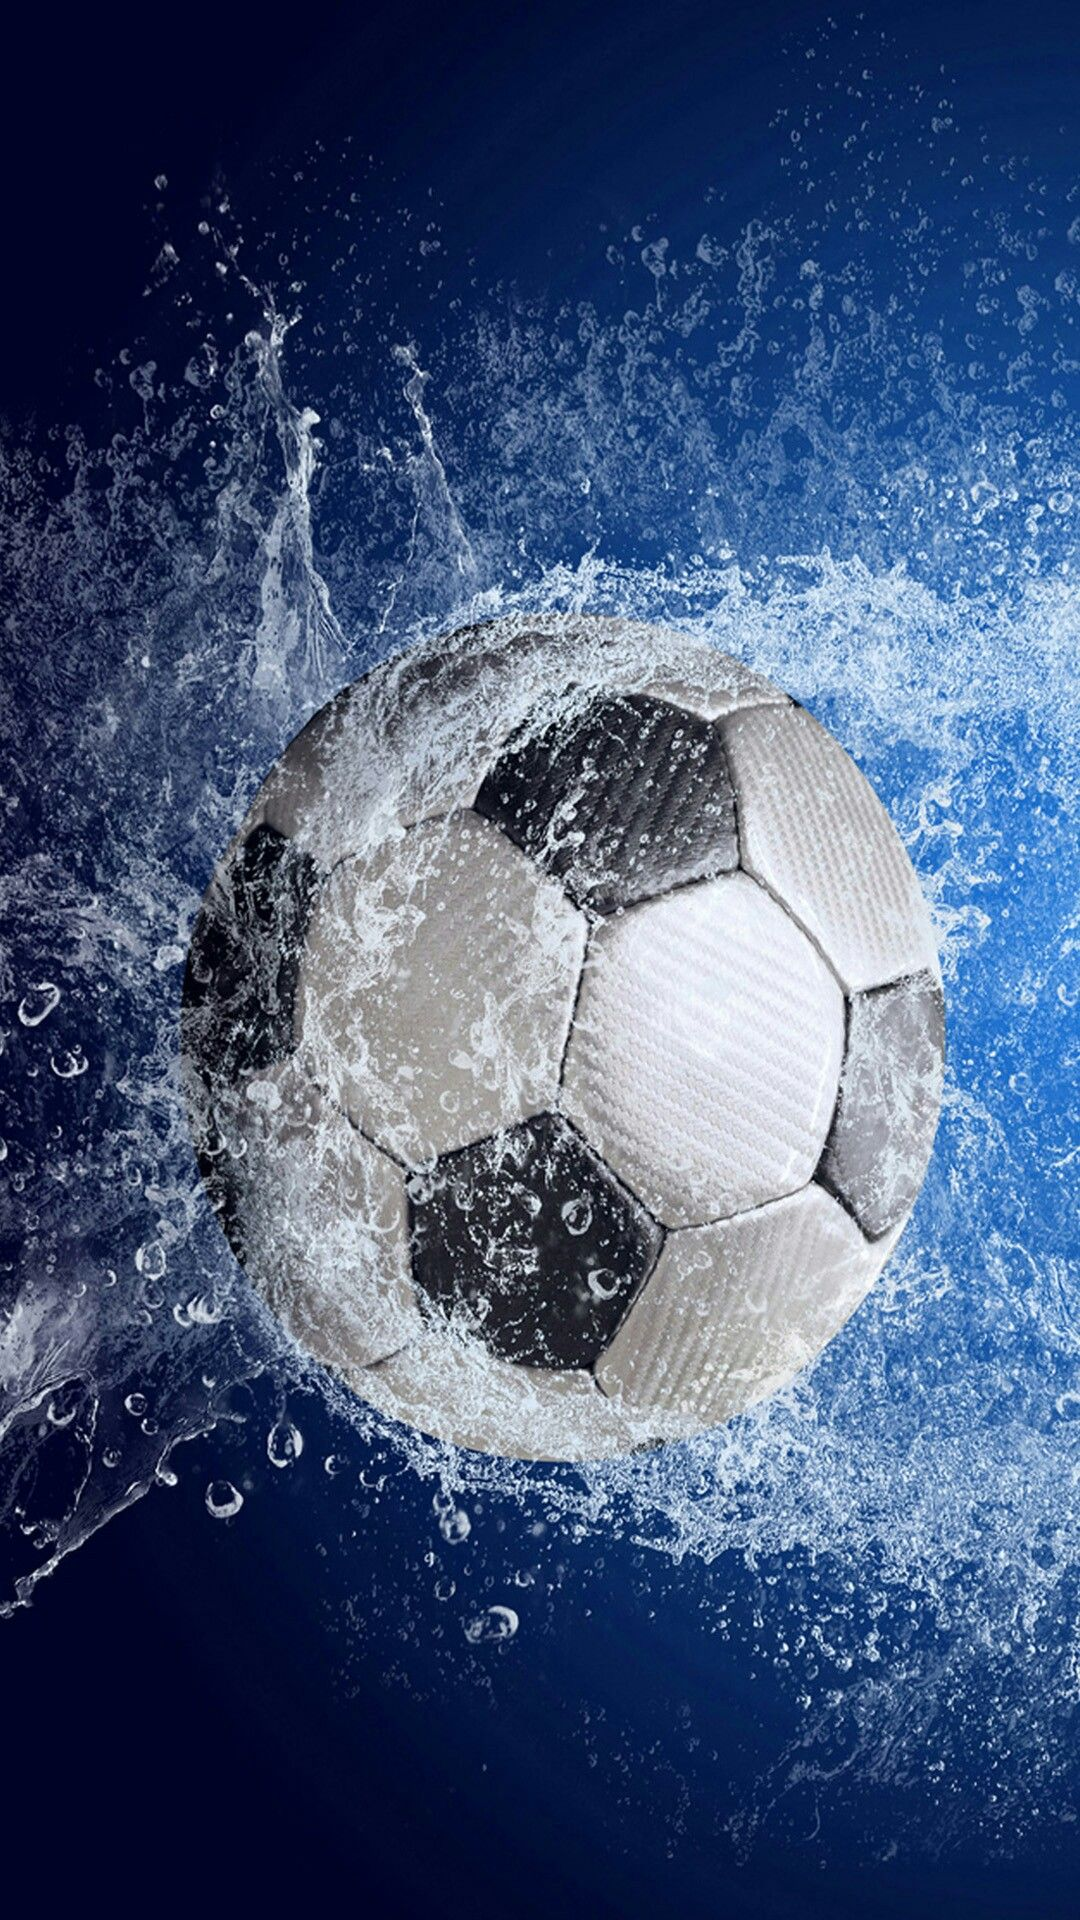 Pin By Blue Elephant On Photography Soccer Ball Soccer Backgrounds Soccer